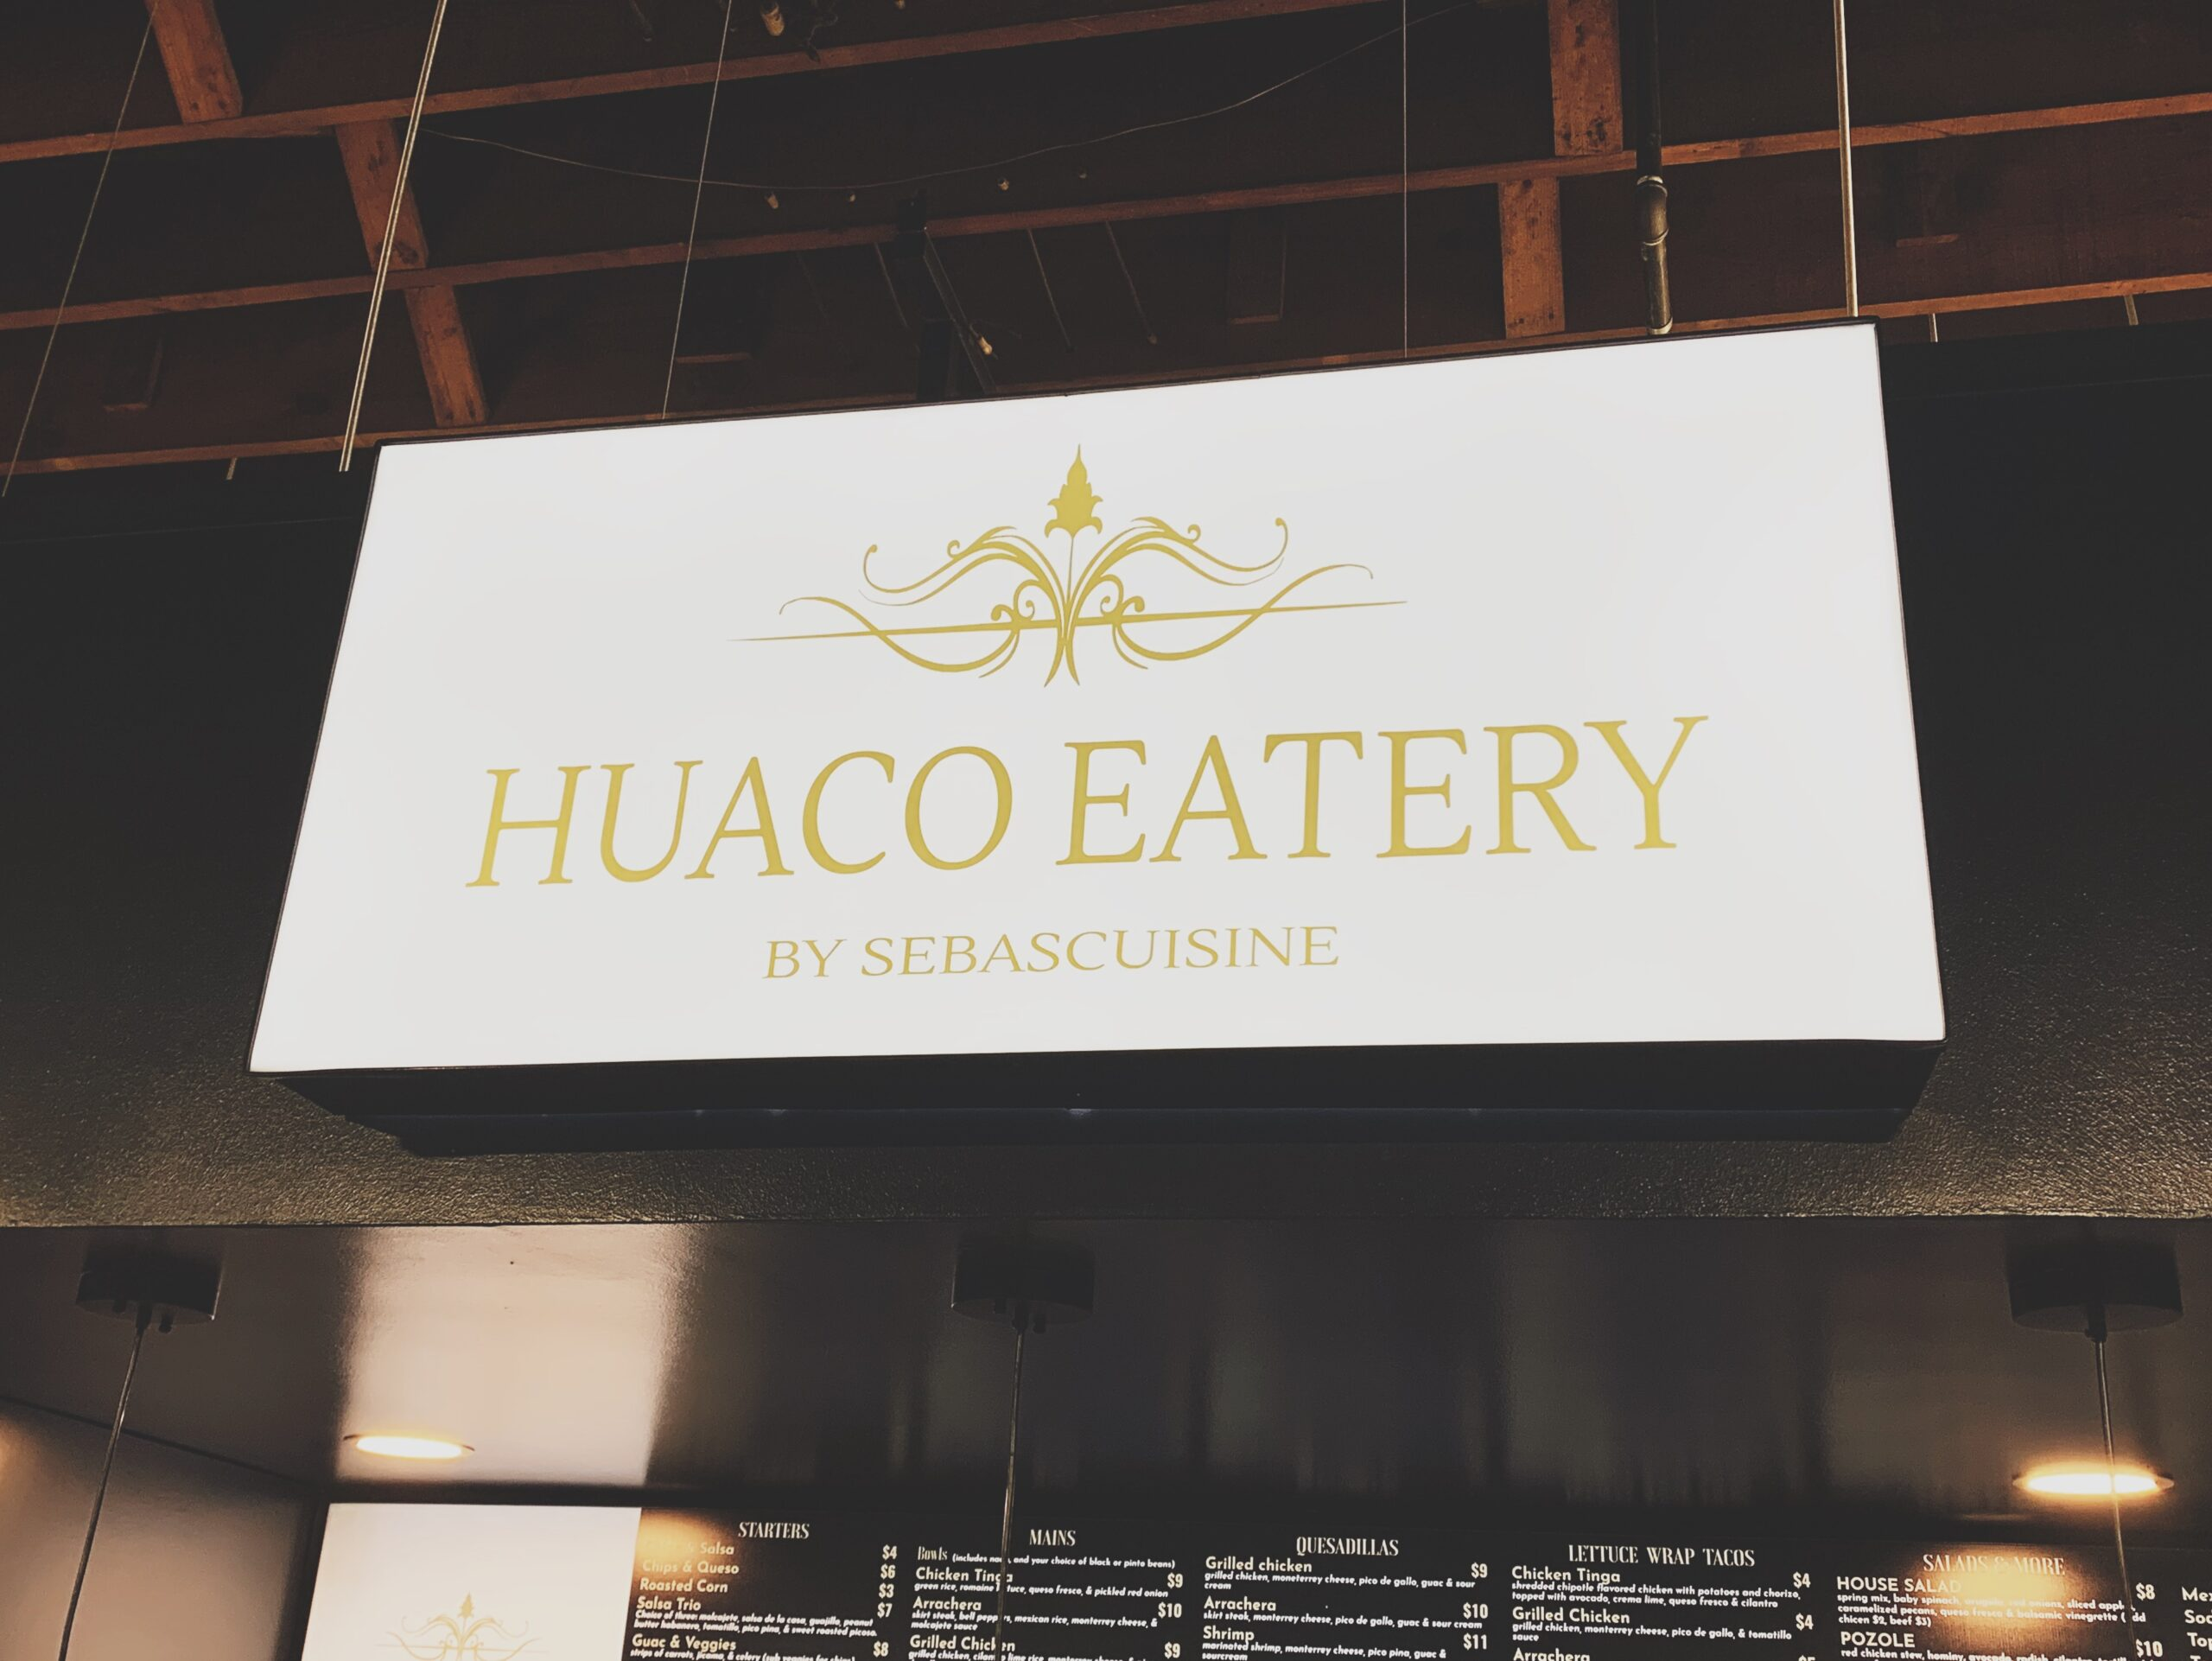 Huaco Eatery is Now Open!